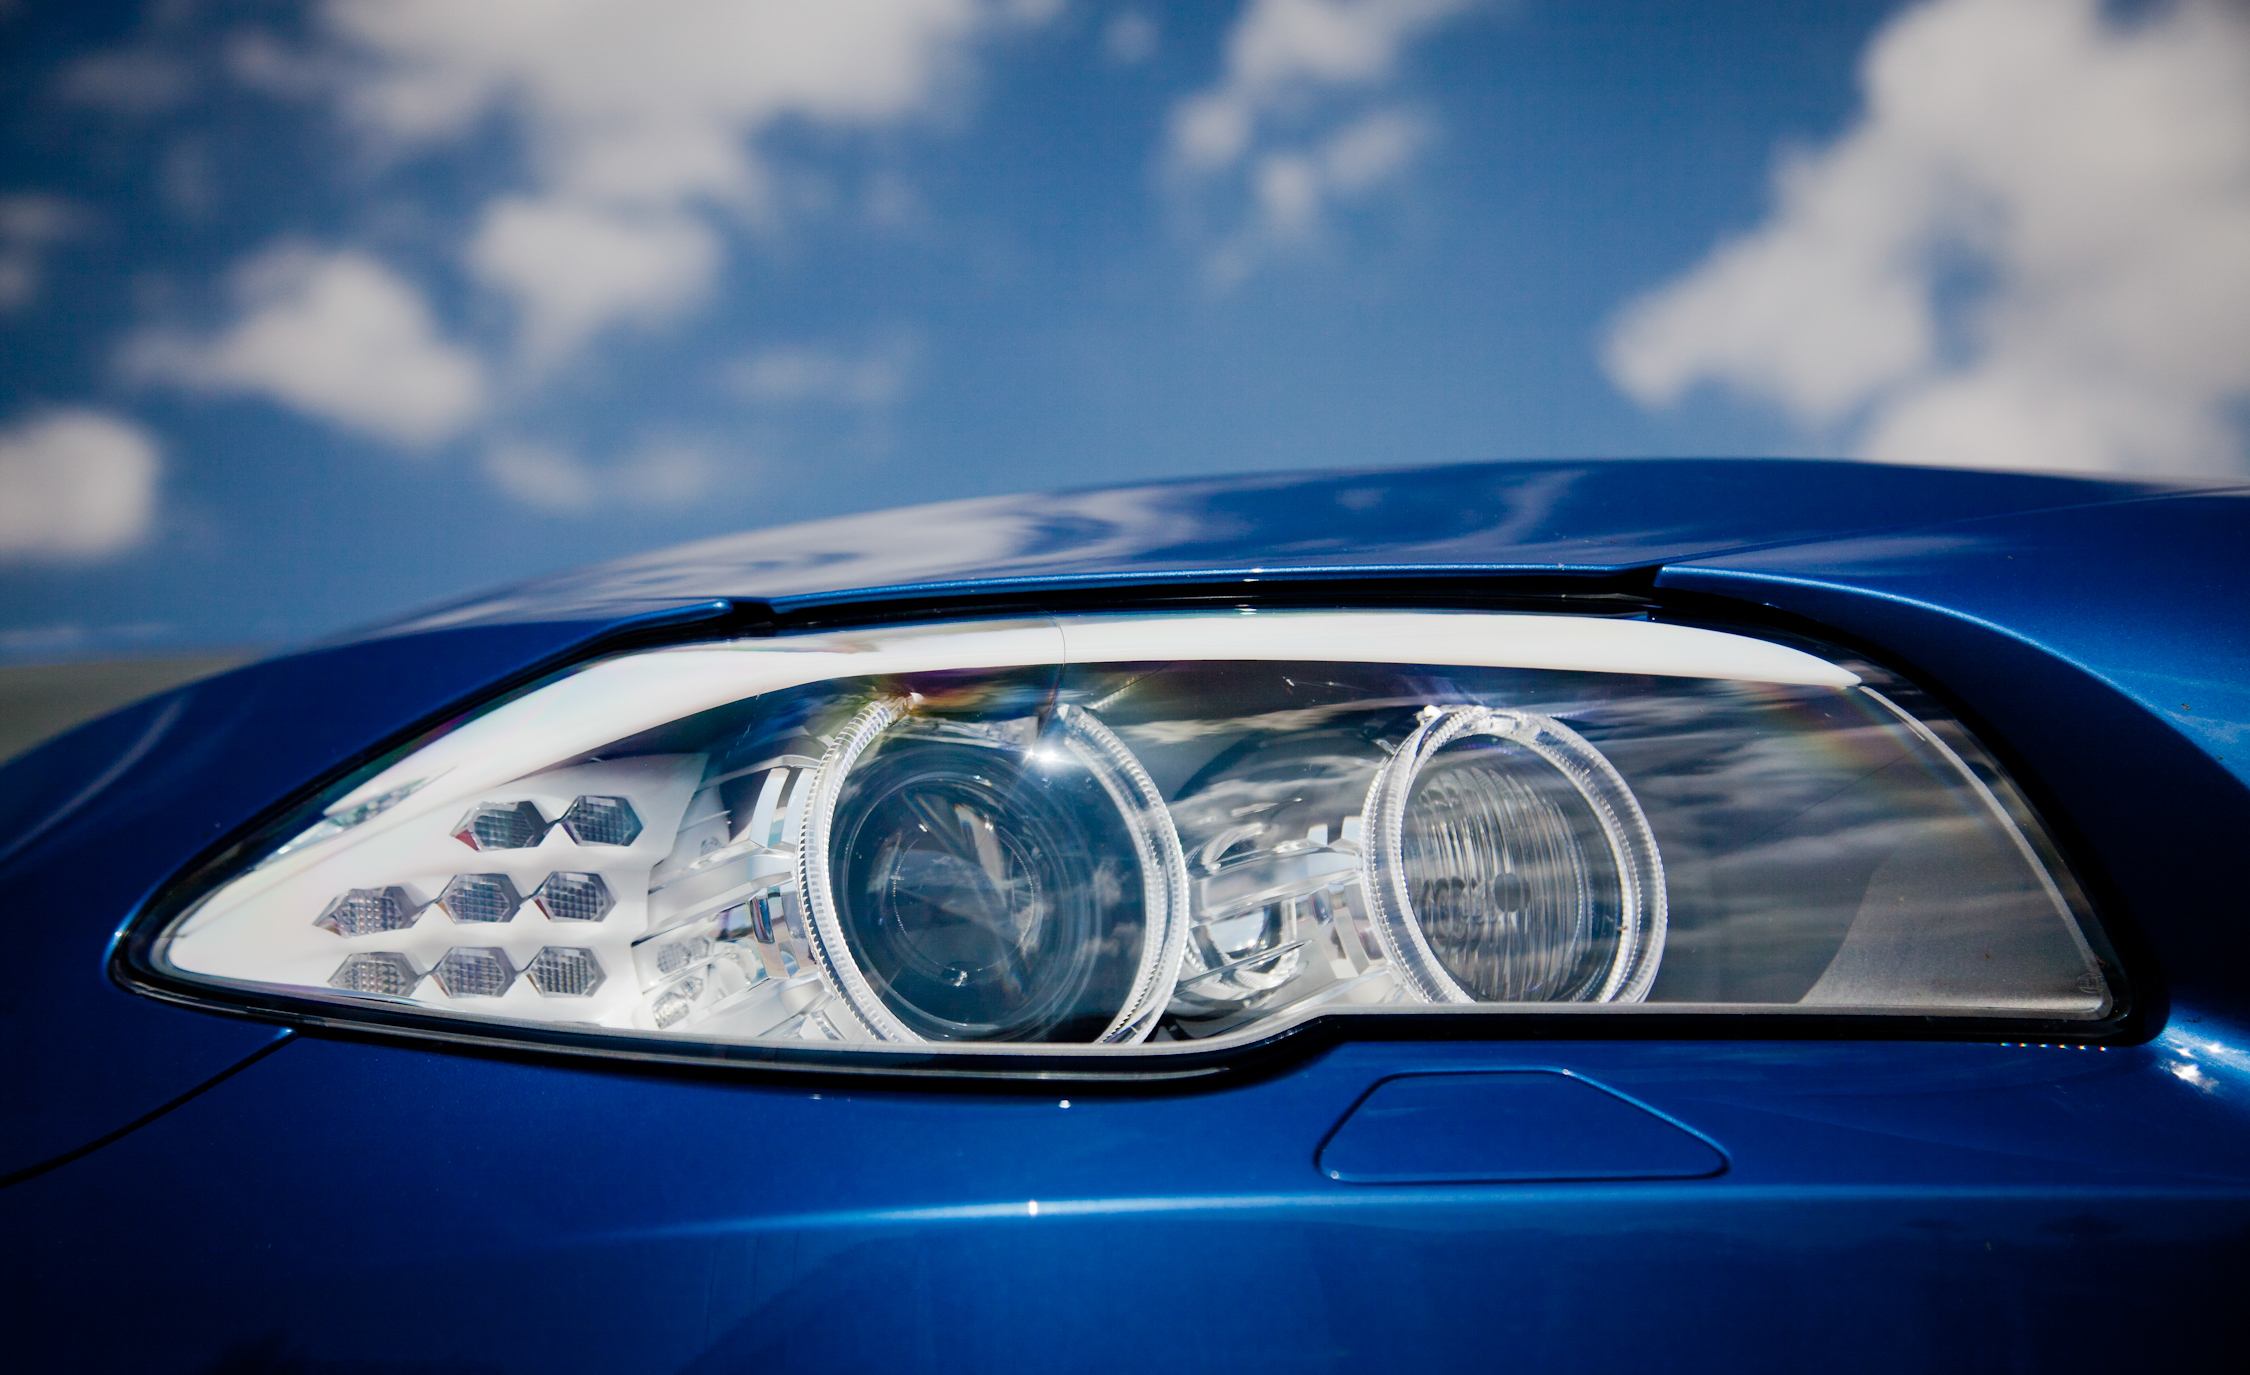 2013 BMW M5 Exterior View Headlight (View 17 of 22)